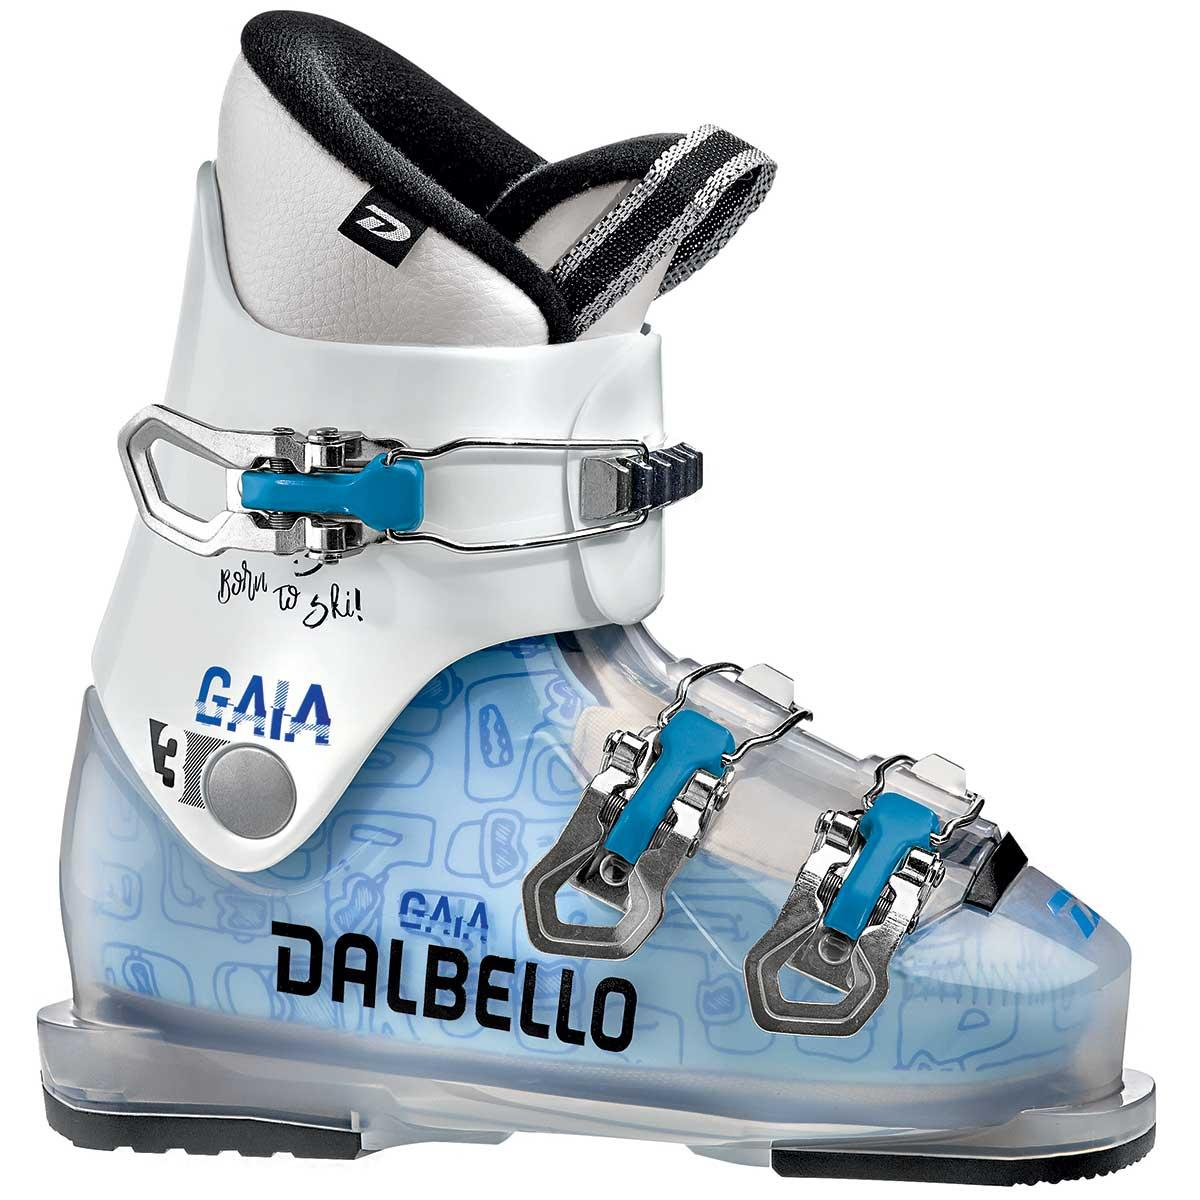 Dalbello Gaia 3 junior ski boot in trans white